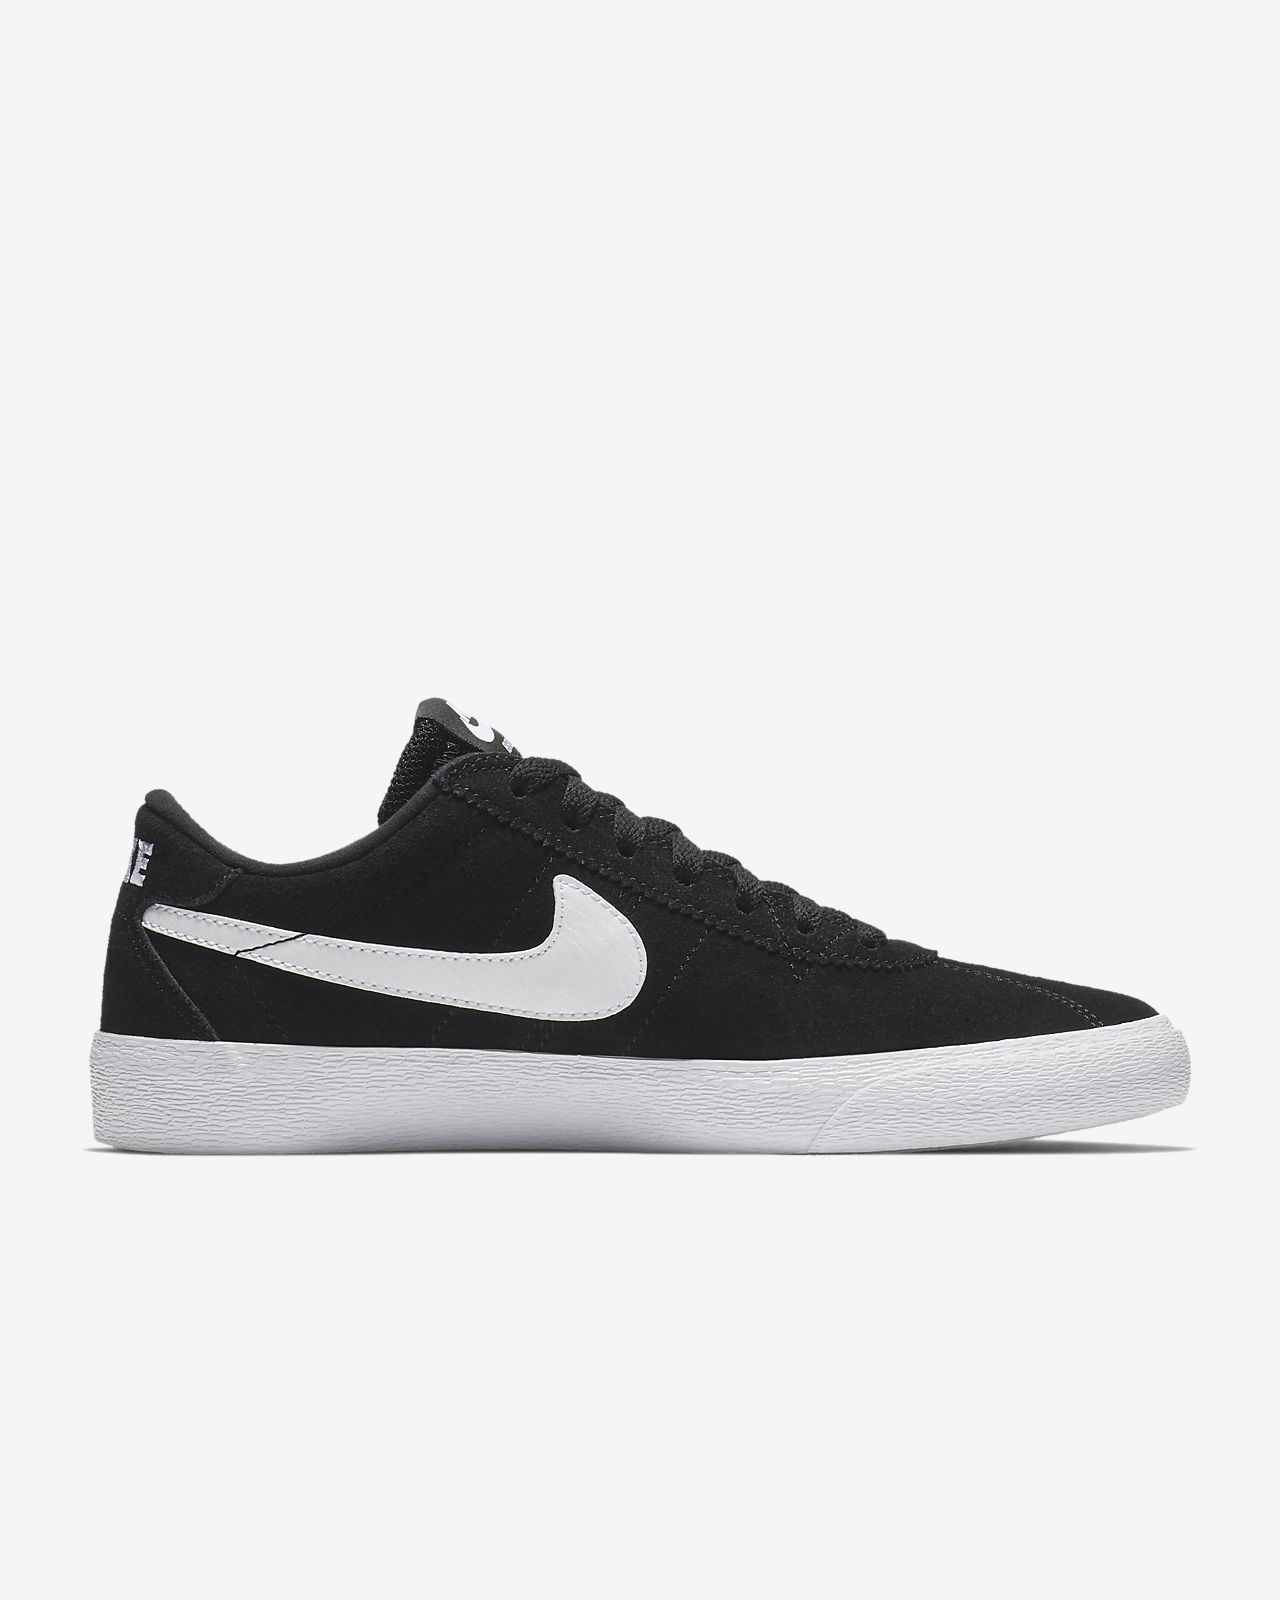 sale retailer 52c45 4dafb ... Nike SB Zoom Bruin Low Women s Skateboarding Shoe